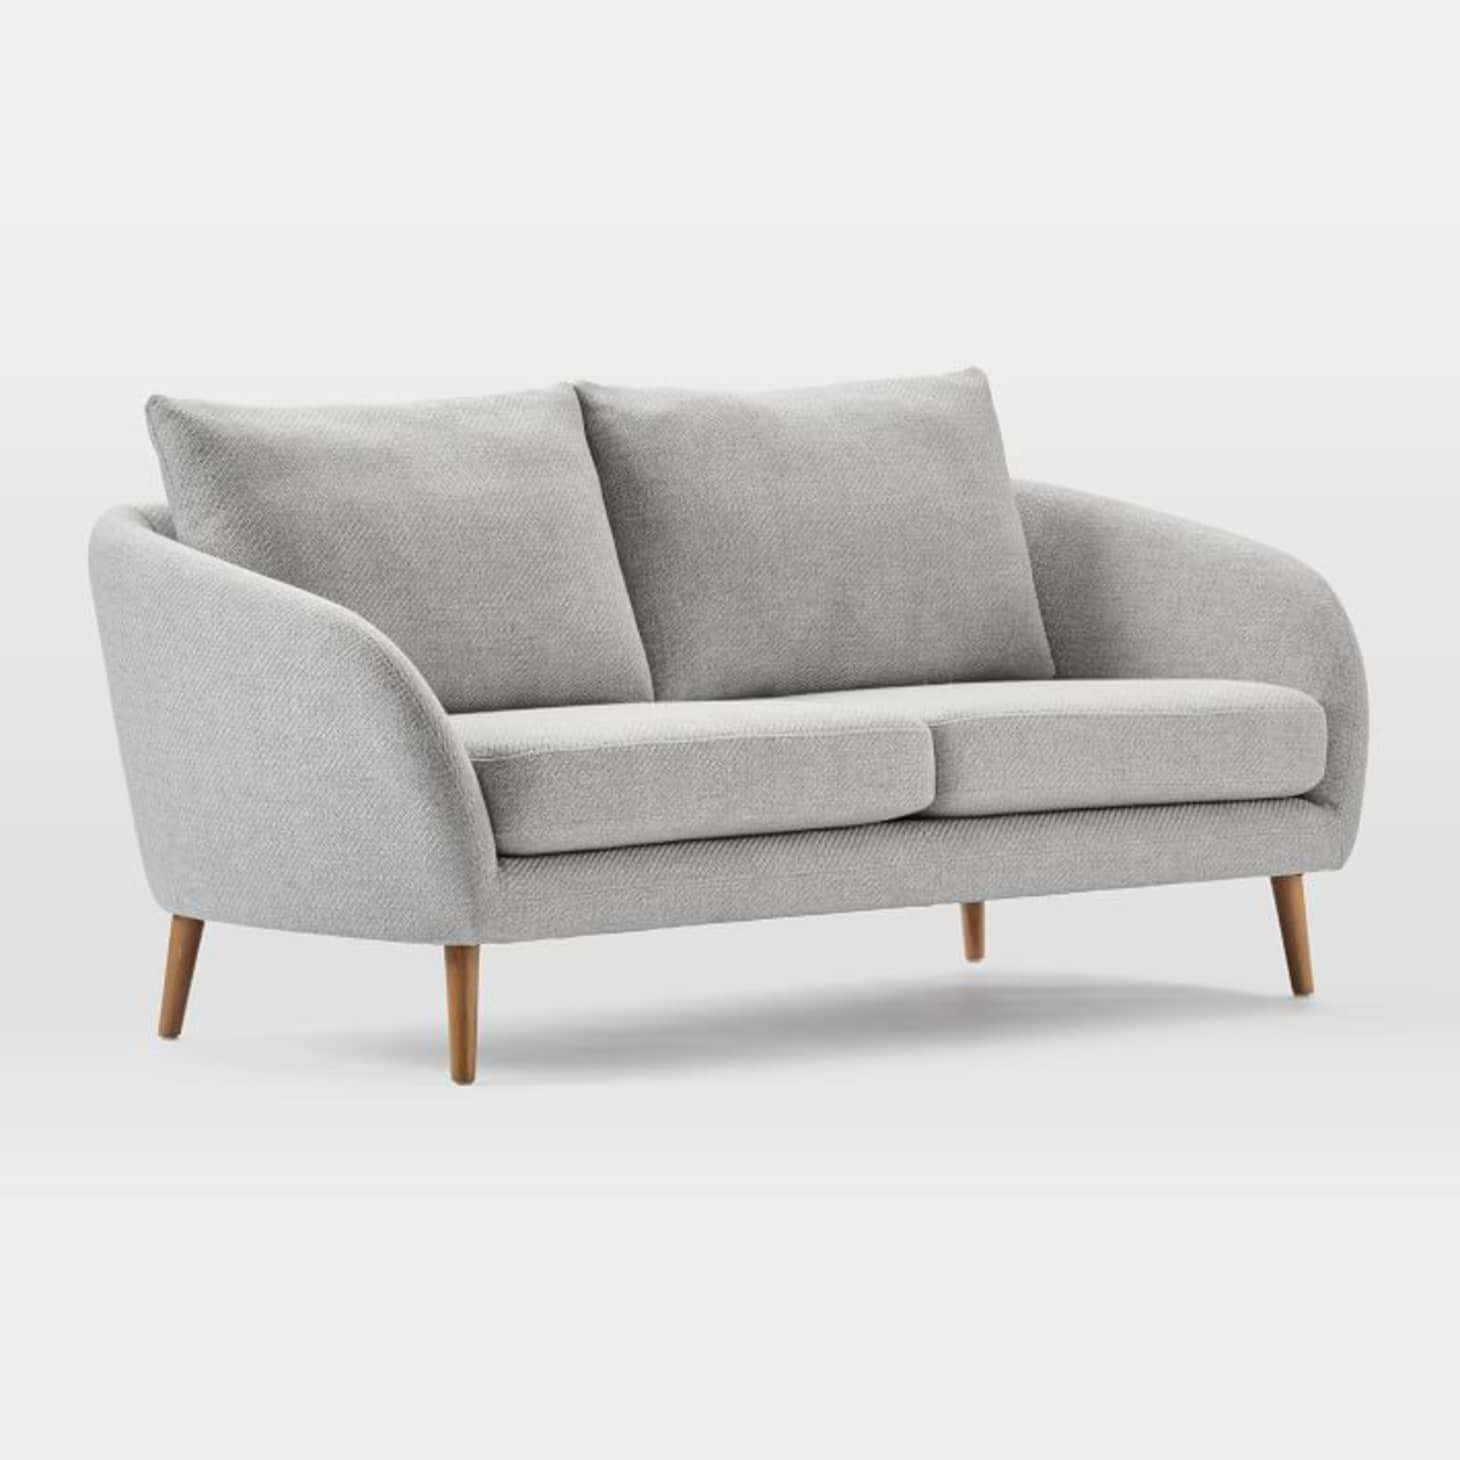 4th Of July Furniture Sales: West Elm Fourth Of July Home Sale